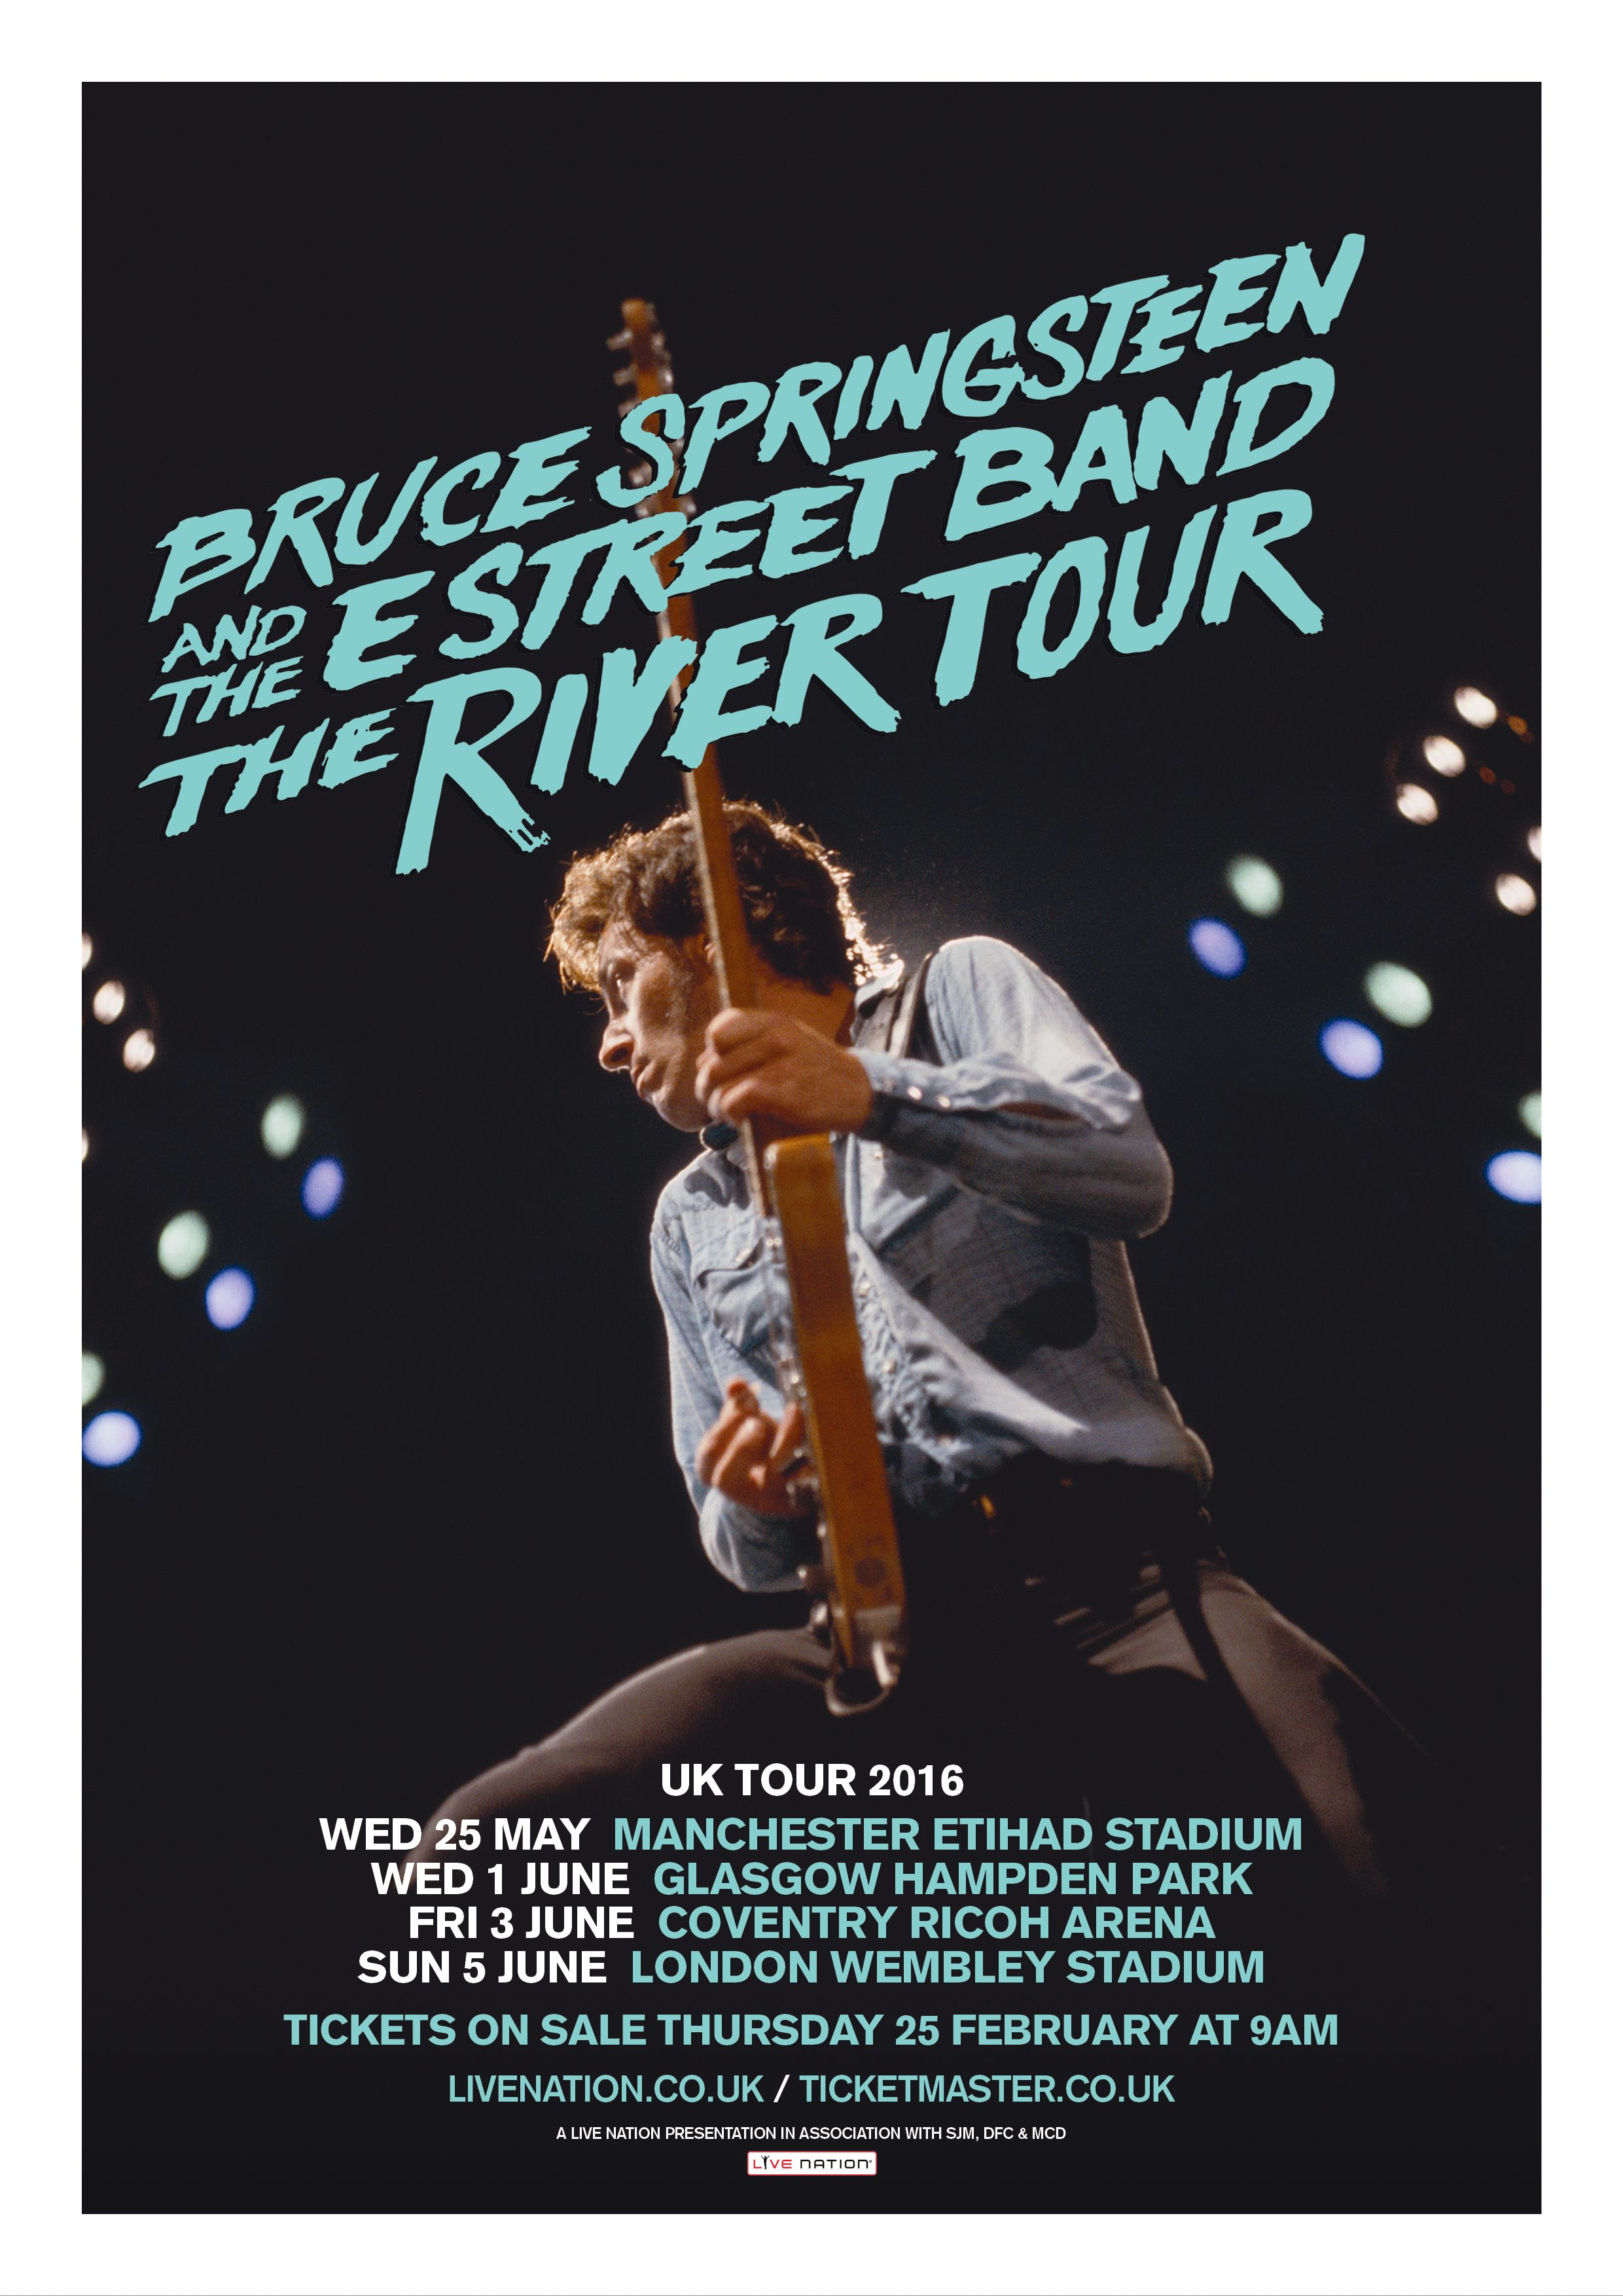 Bruce Springsteen And The E Street Band The River Tour